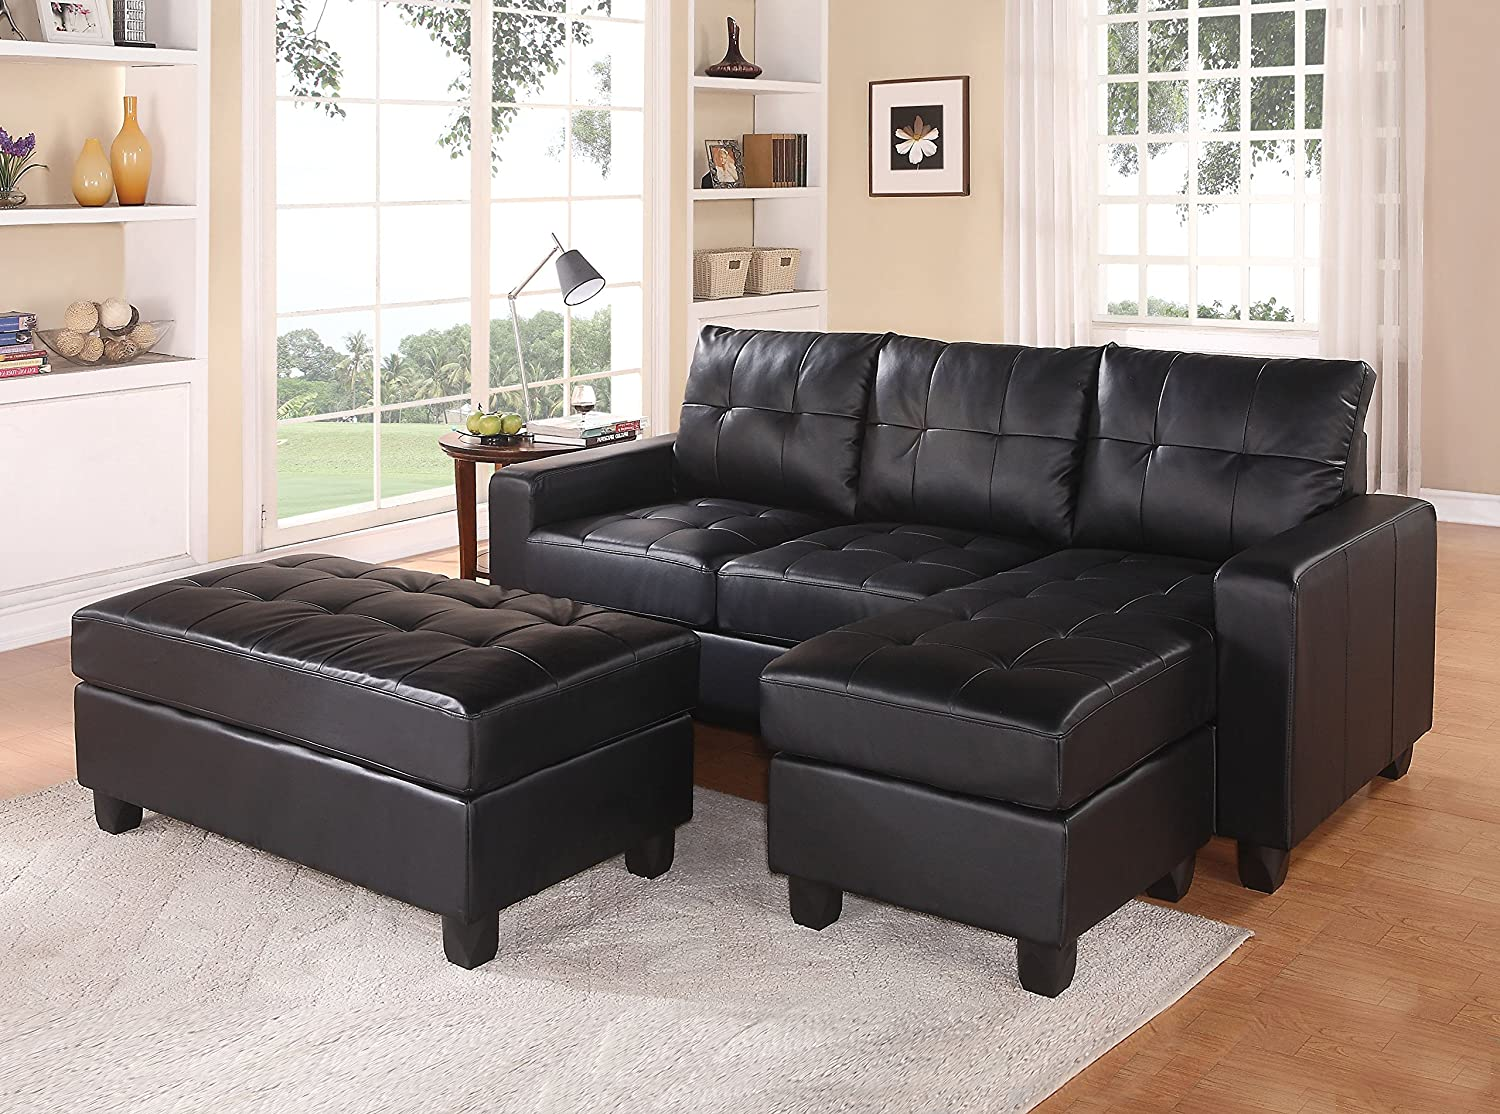 Amazon.com: ACME Lyssa Black Bonded Leather Sectional Sofa with ...